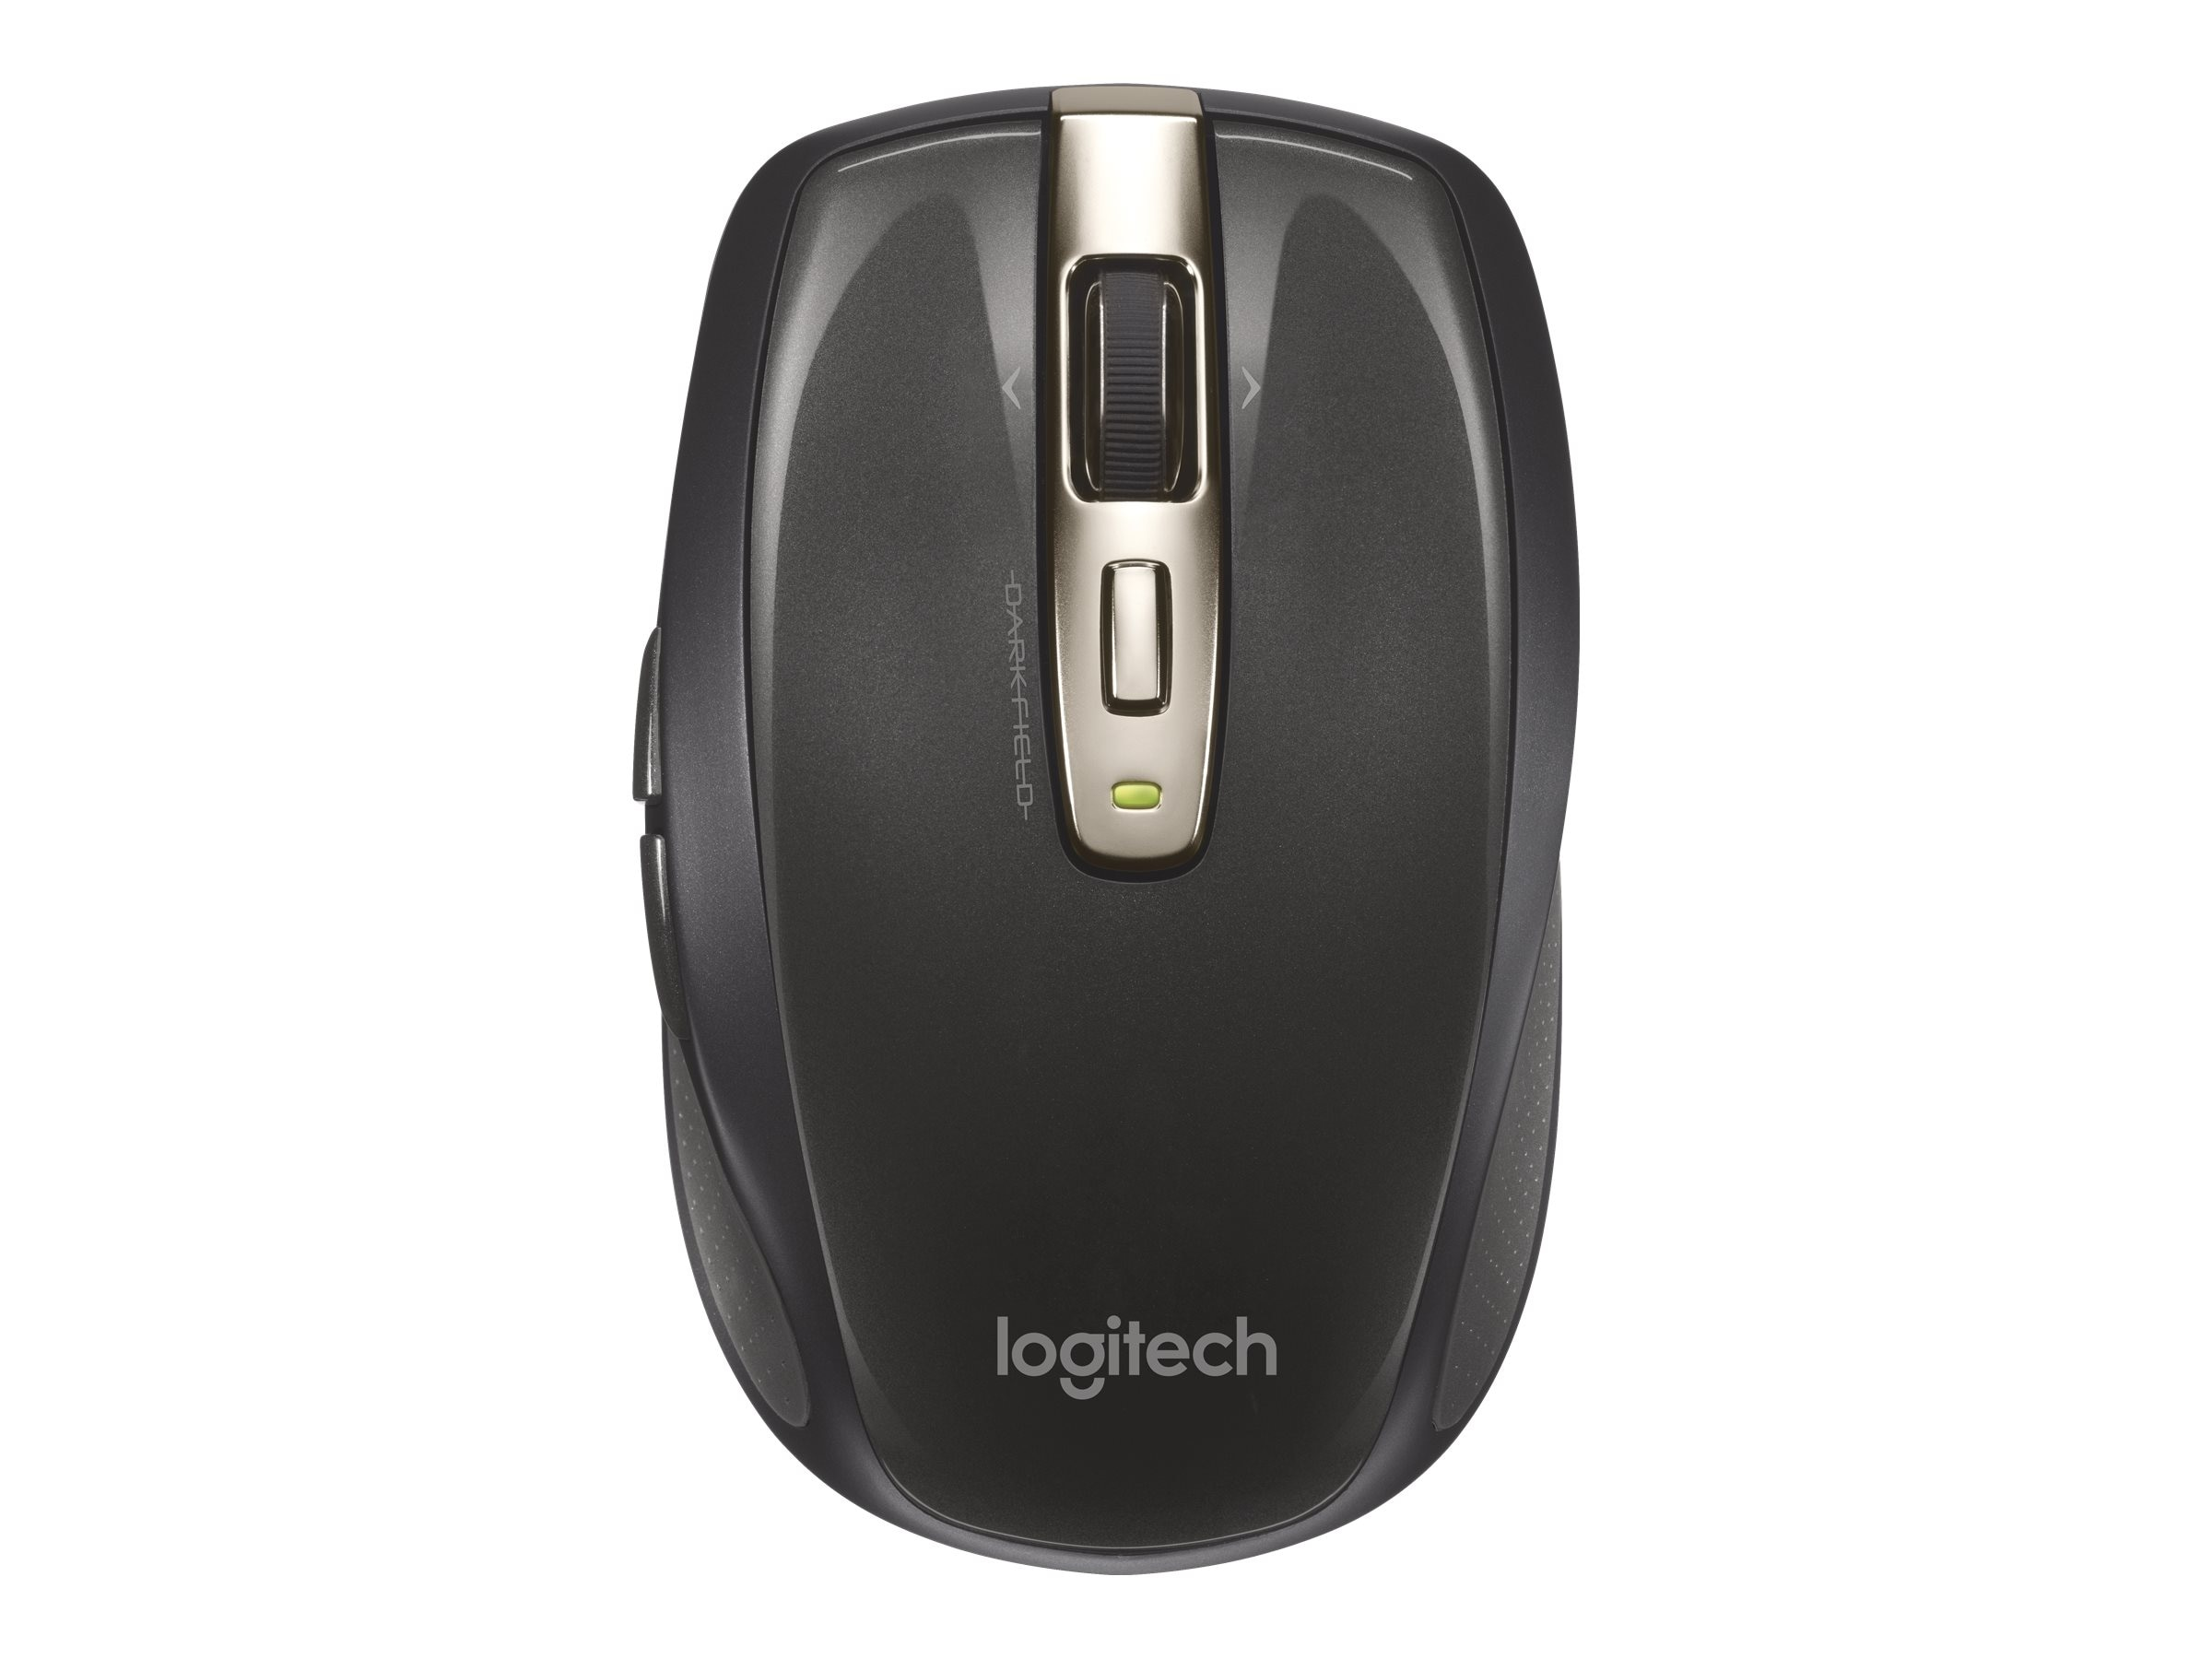 Logitech Anywhere Mobile Mouse MX, Long Range Wireless Mouse, 910-003040